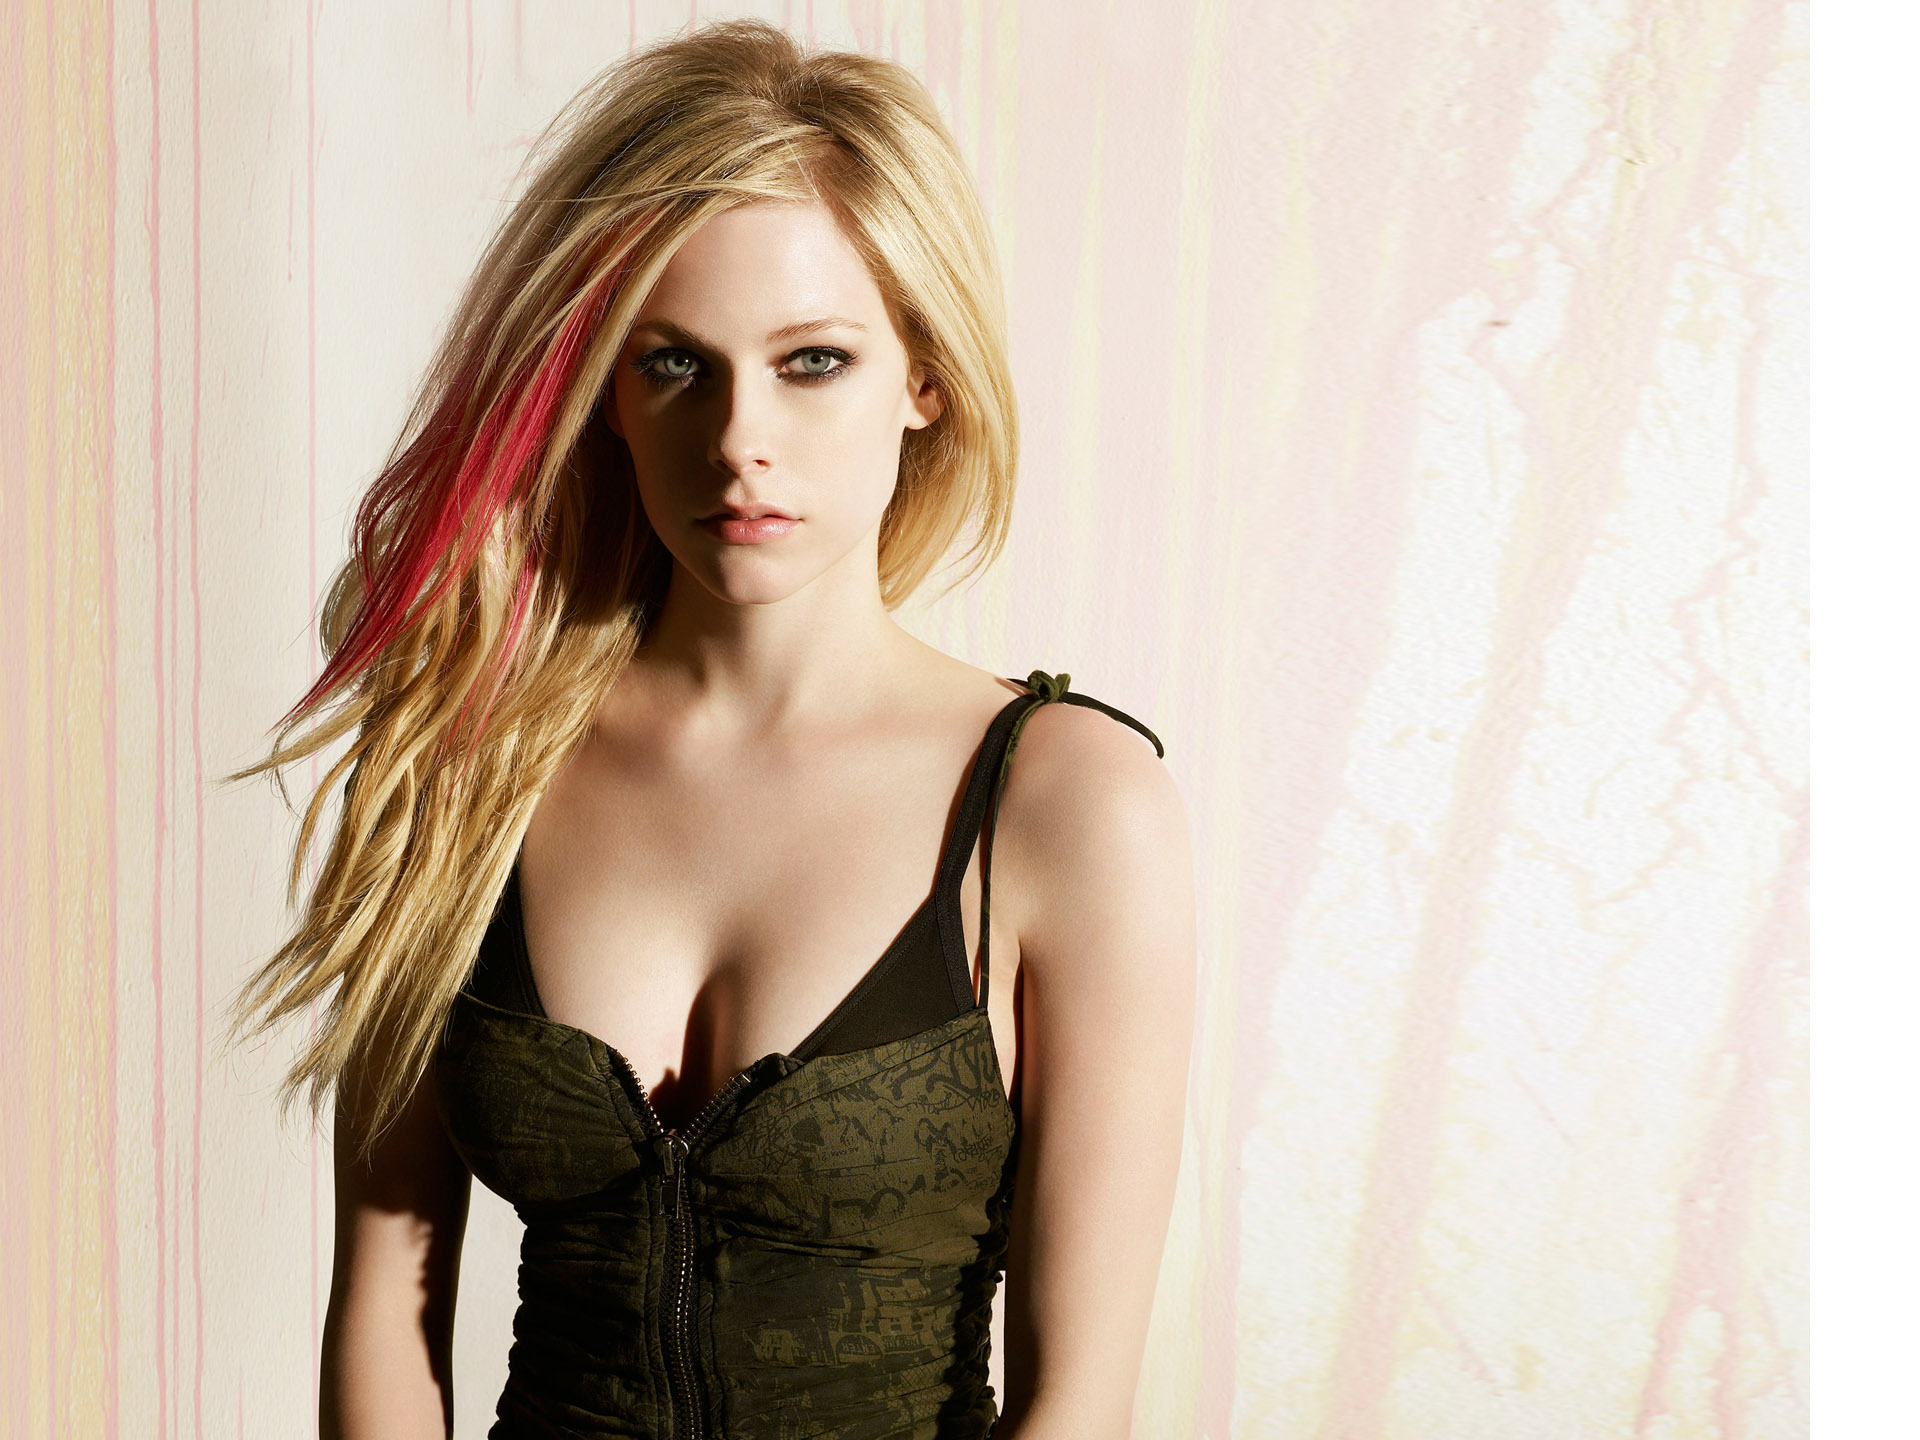 Page 2 Of Lavigne 4k Wallpapers For Your Desktop Or Mobile Screen